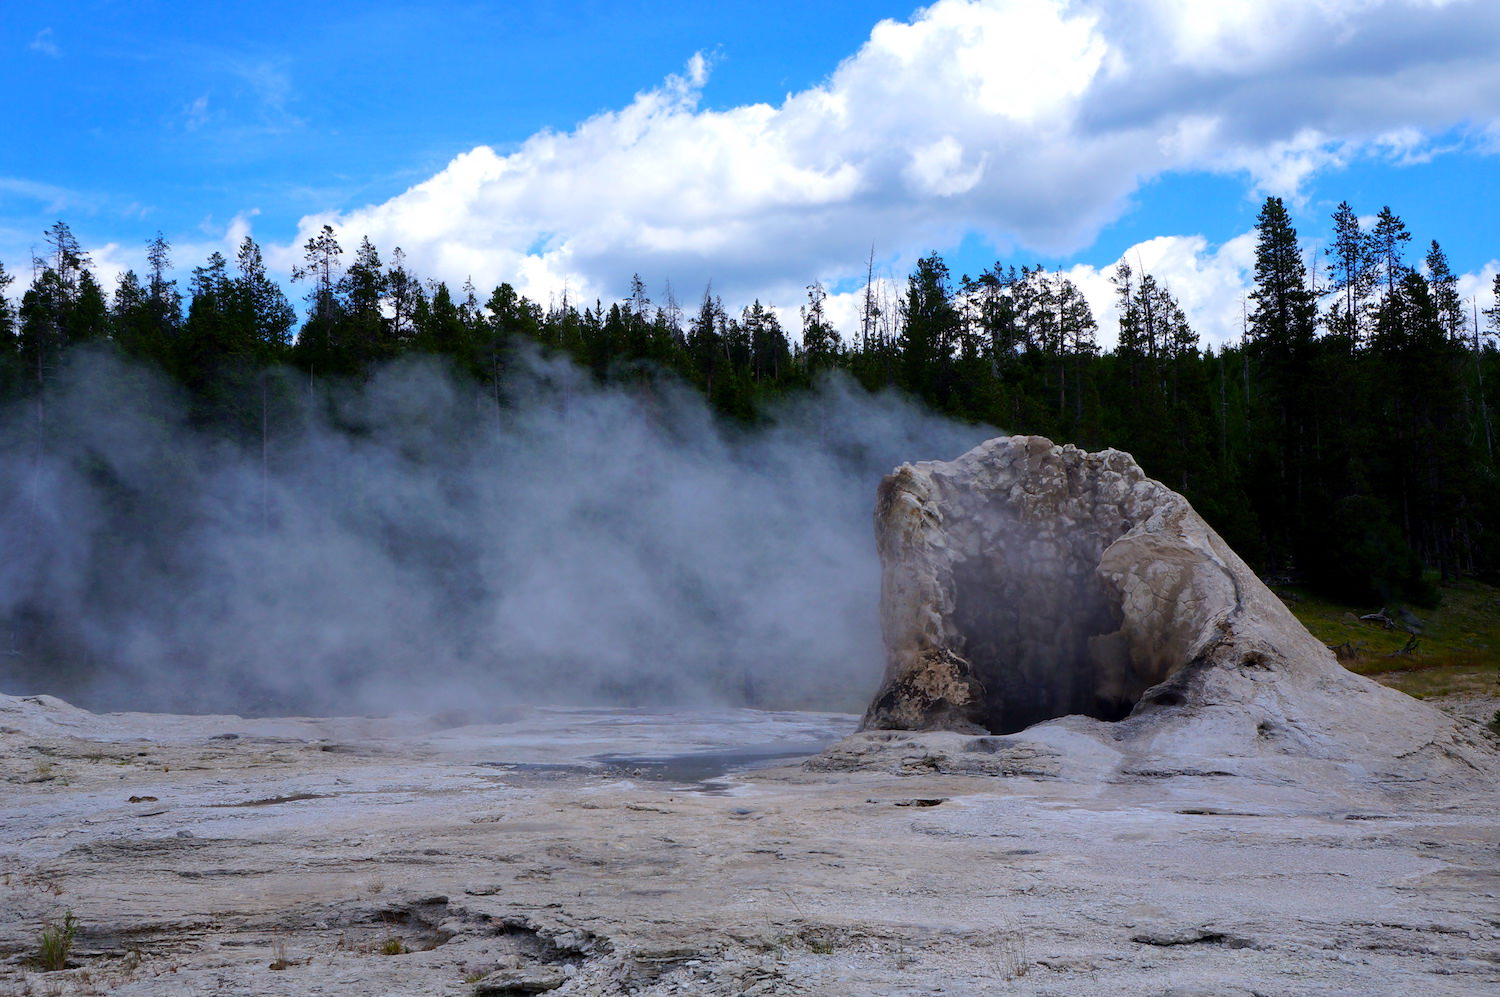 Several of the geysers and hot springs release vapour because of their temperature. They release a smell of sulfur,also known as fart.